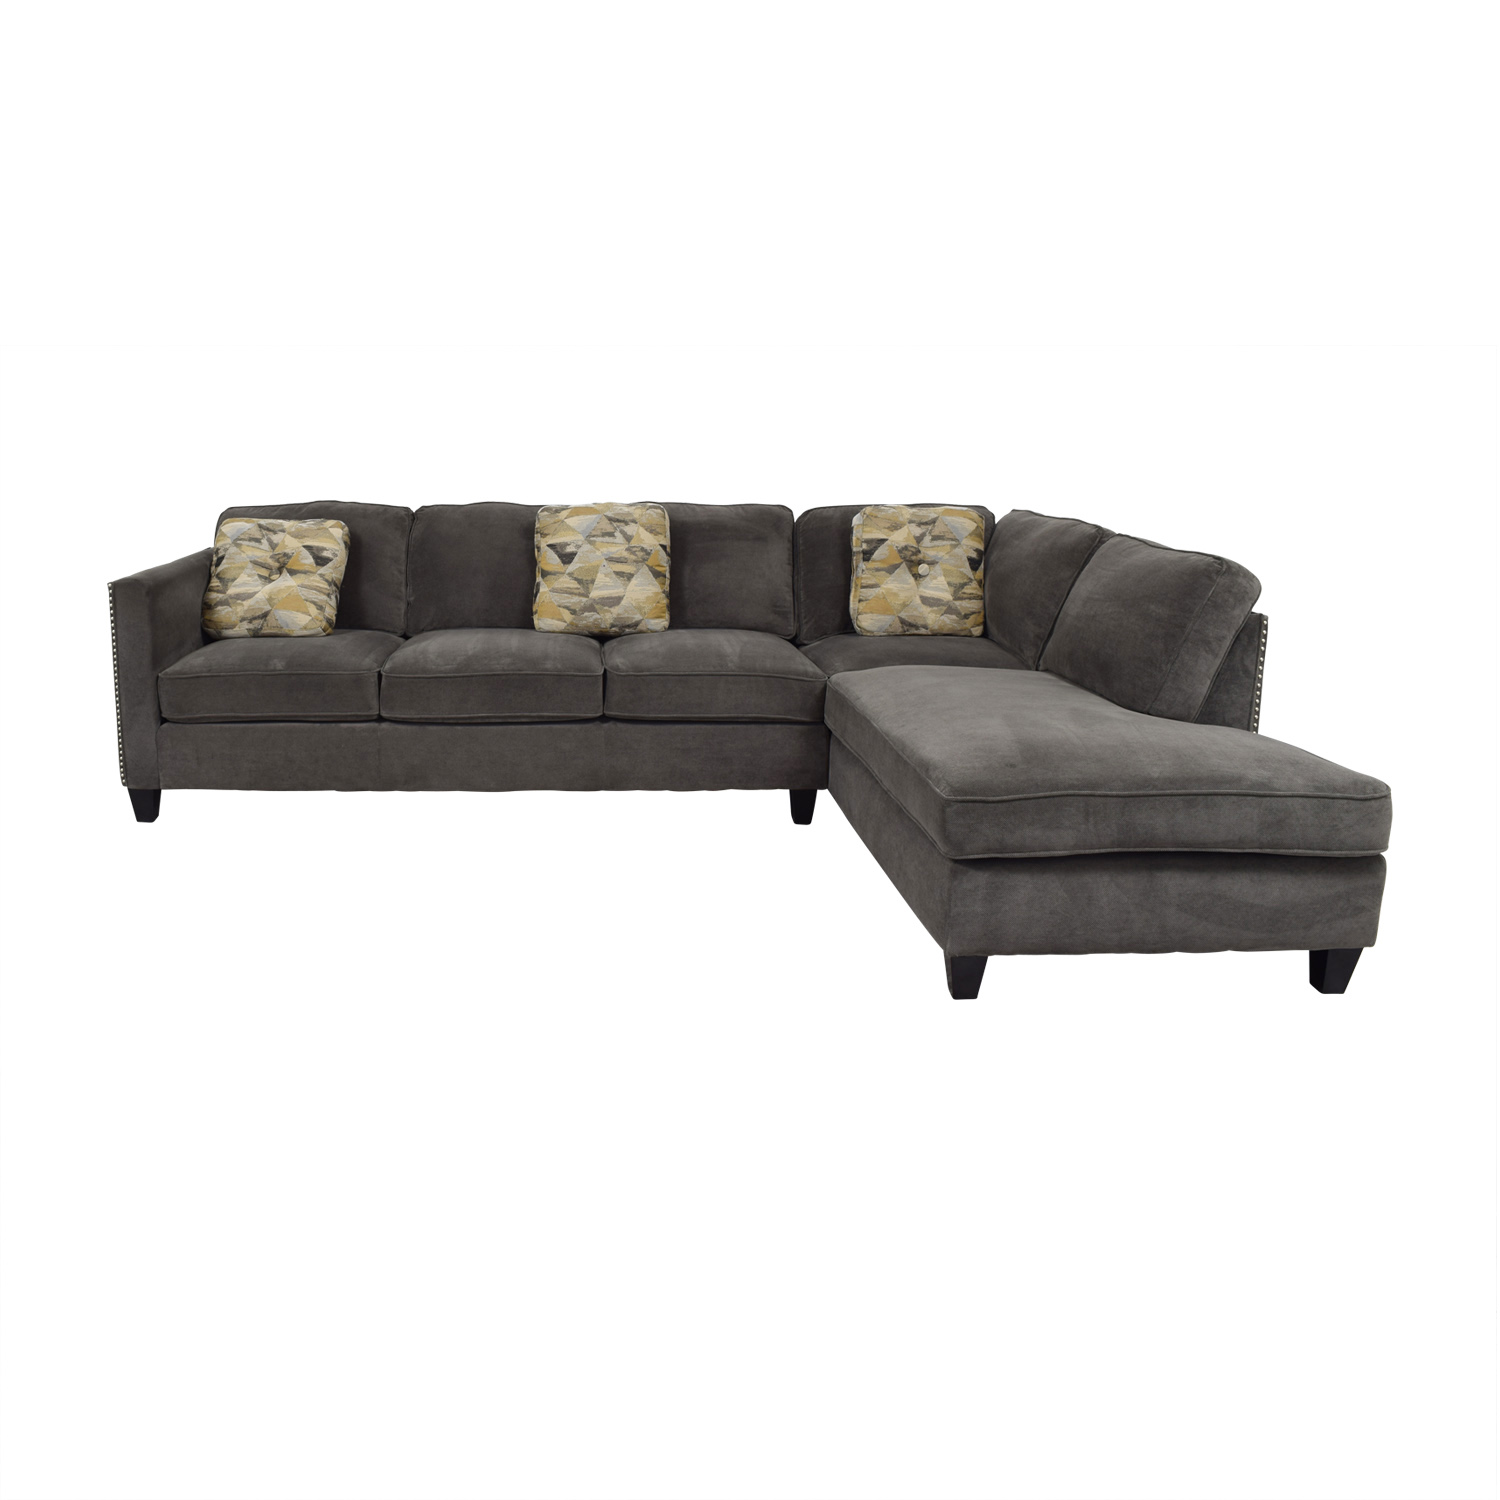 Brayden Studio Brayden Studio Baugh Grey Chaise Sectional discount